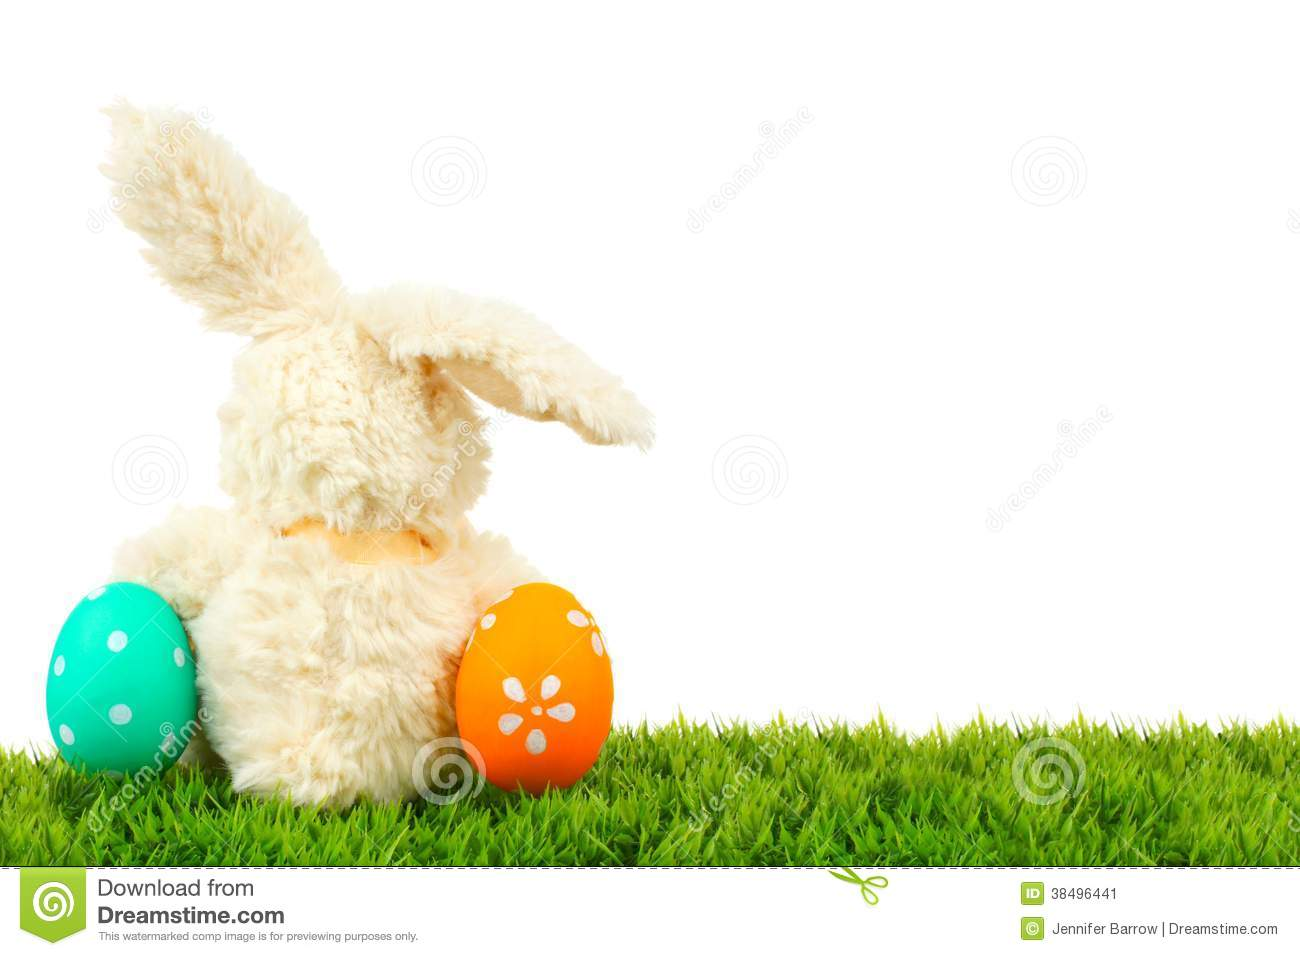 Easter Bunny And Eggs Border Stock Image - Image: 38496441